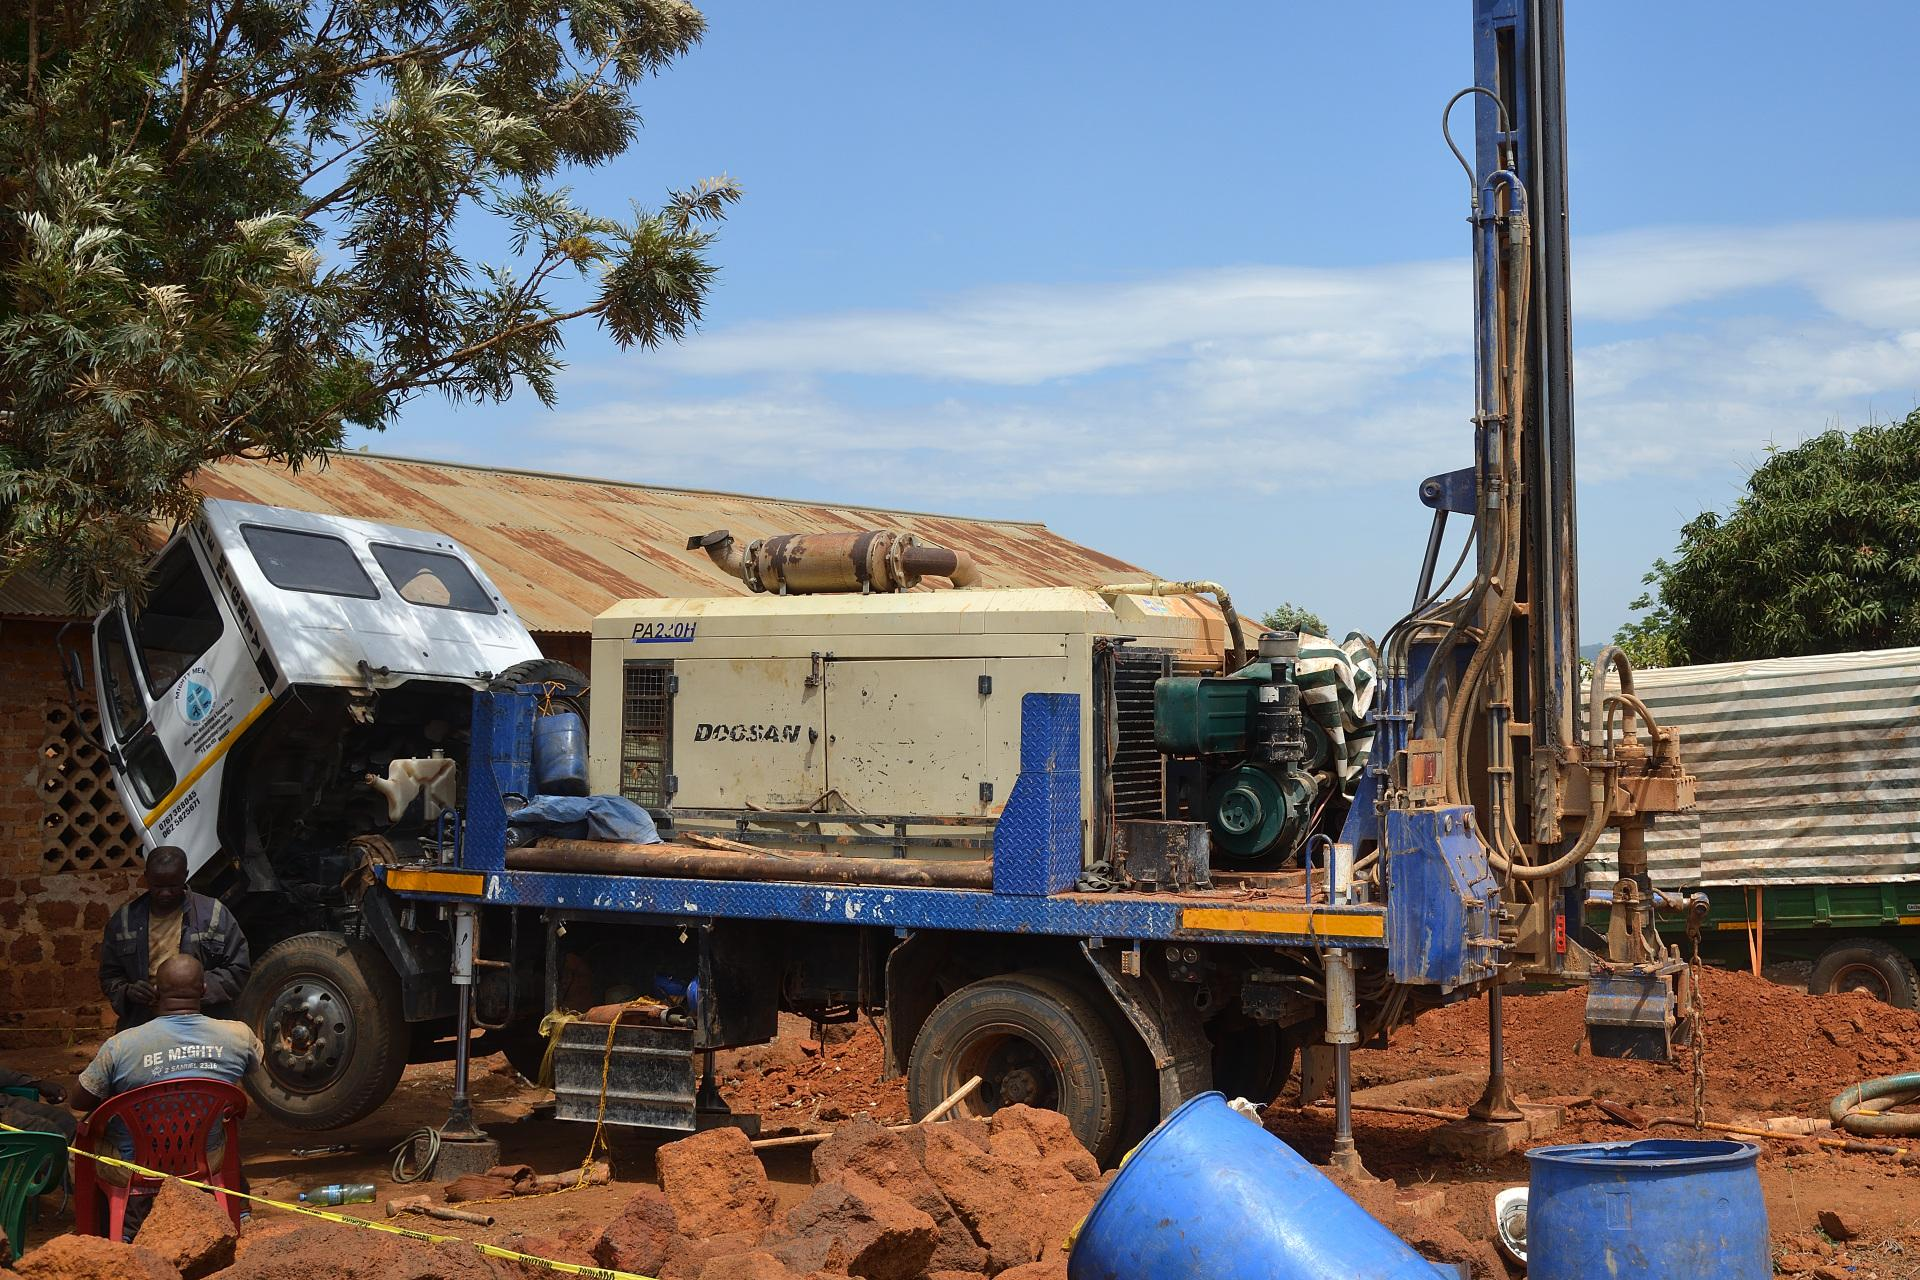 Drilling rig on the construction site